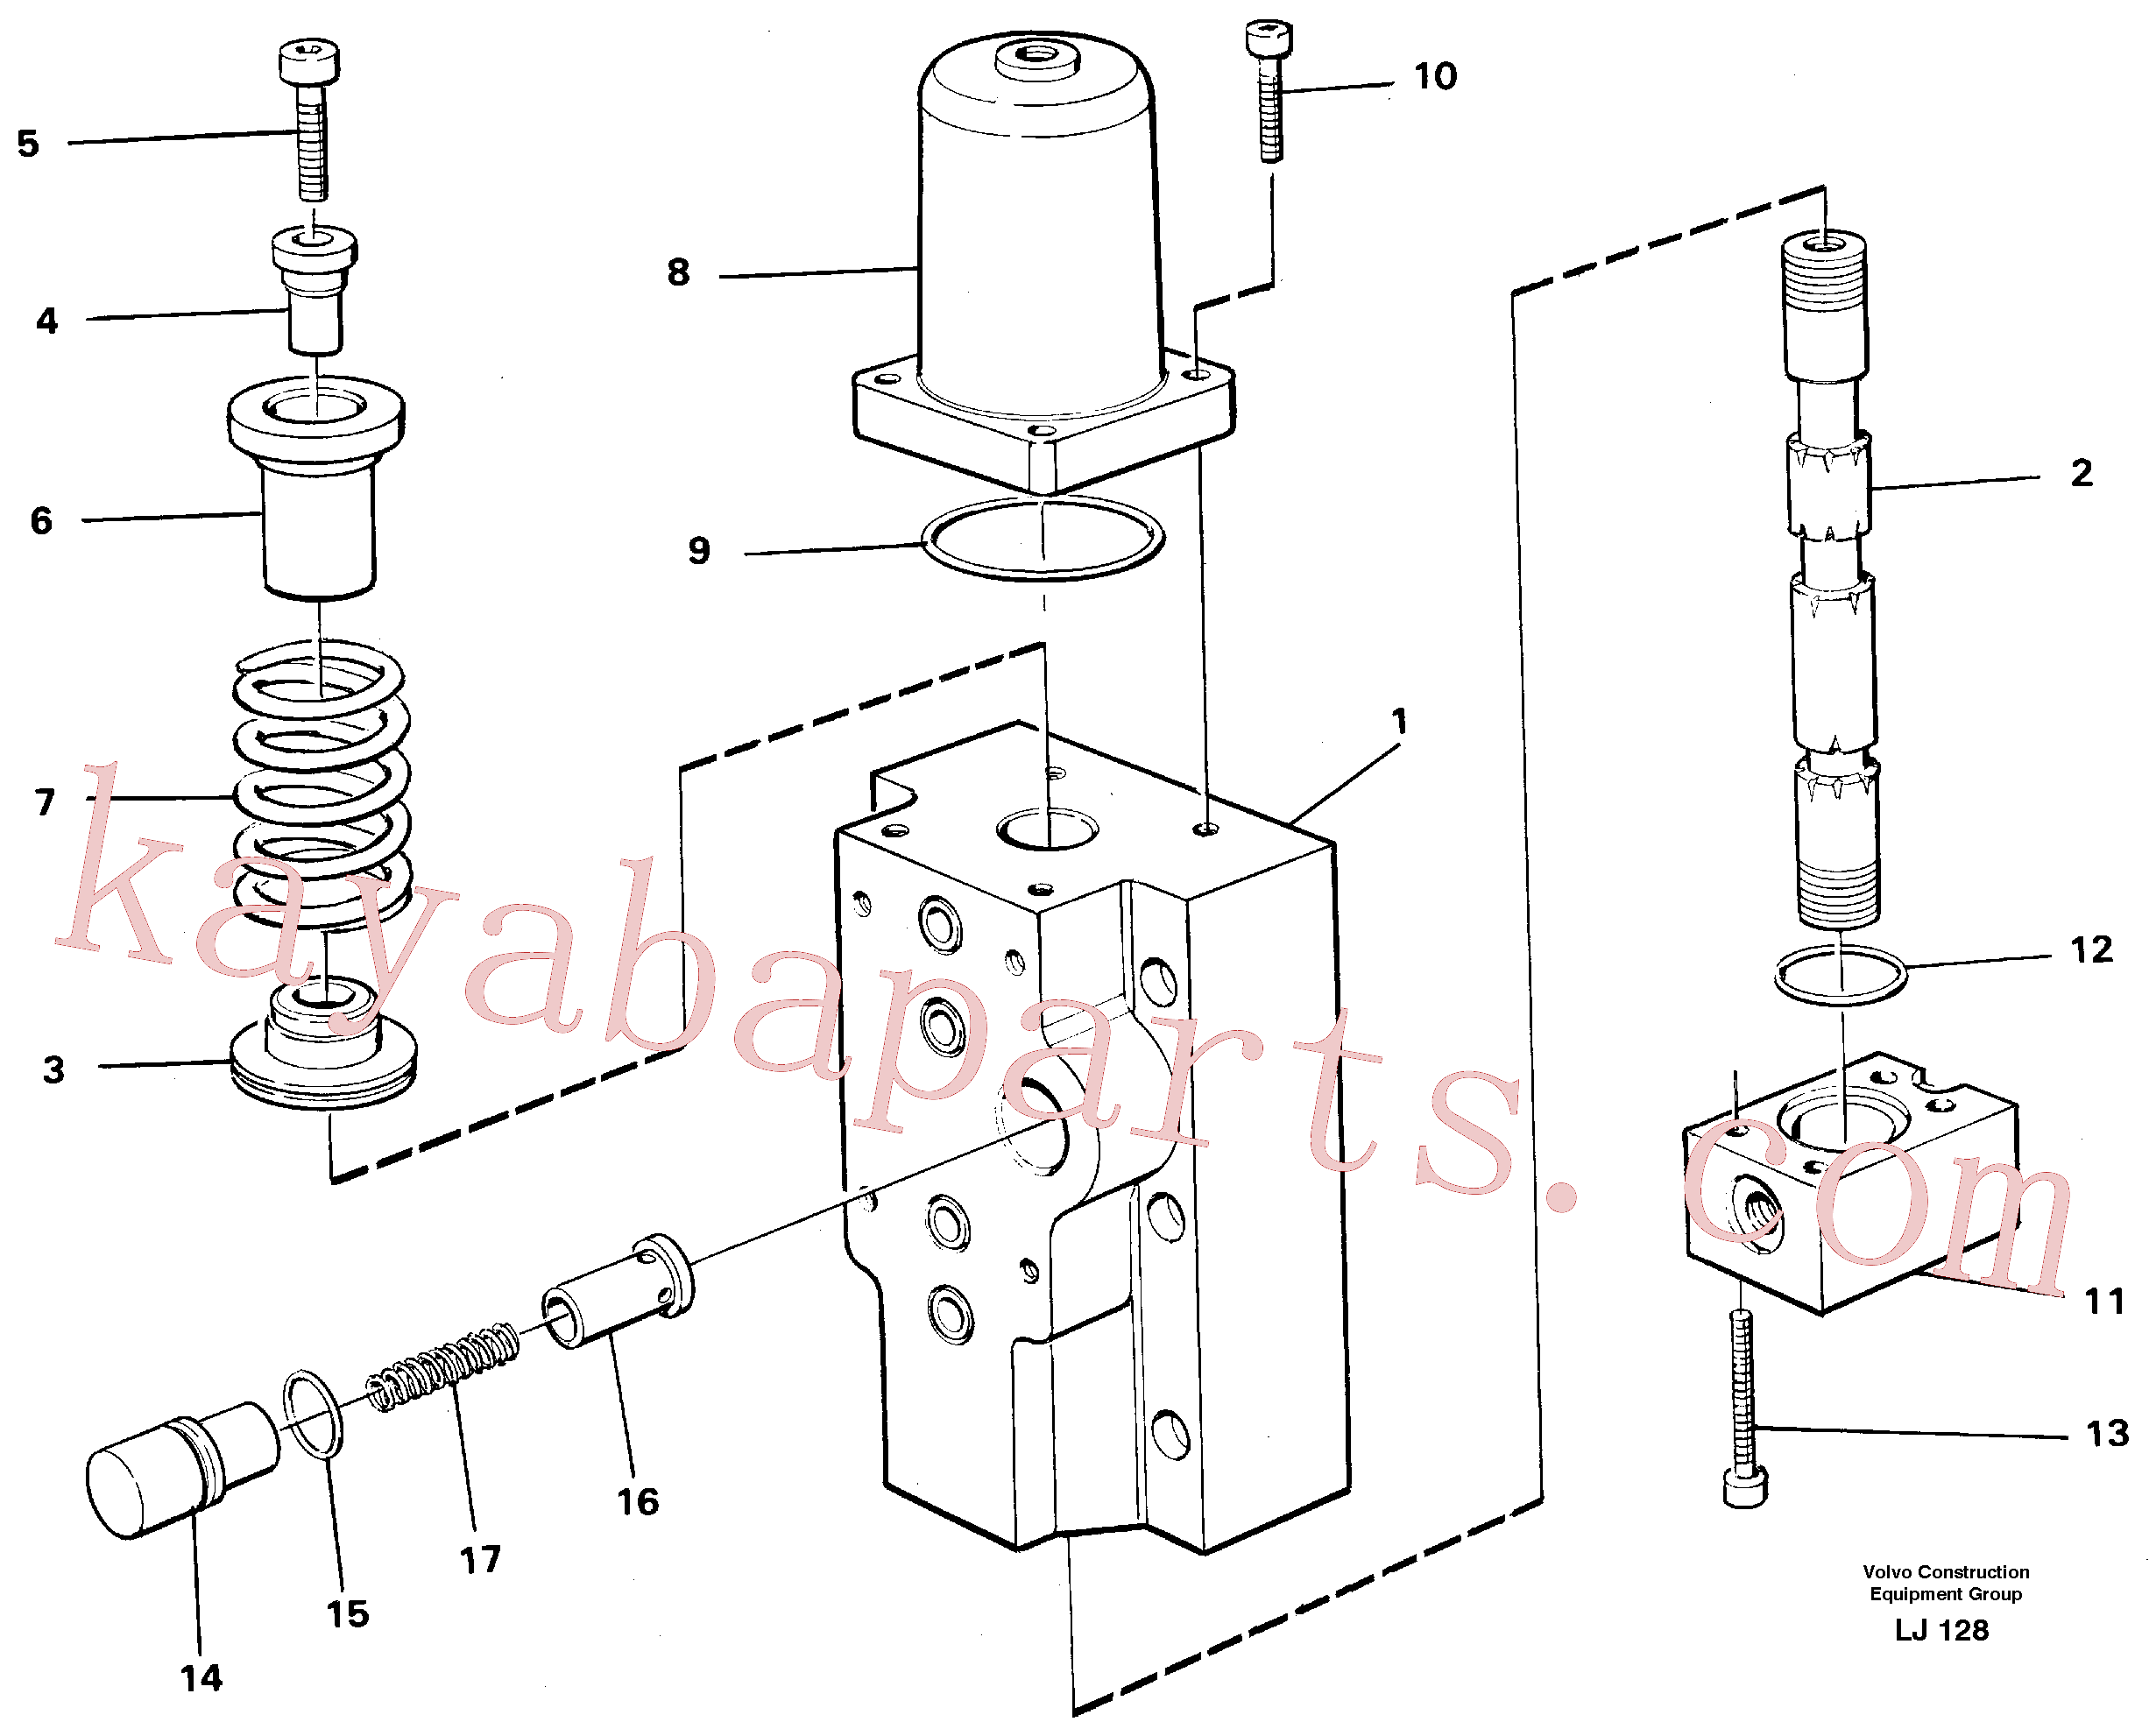 VOE14258011 for Volvo Four-way valves Primary, Four-way valve for hammer/shears(LJ128 assembly)